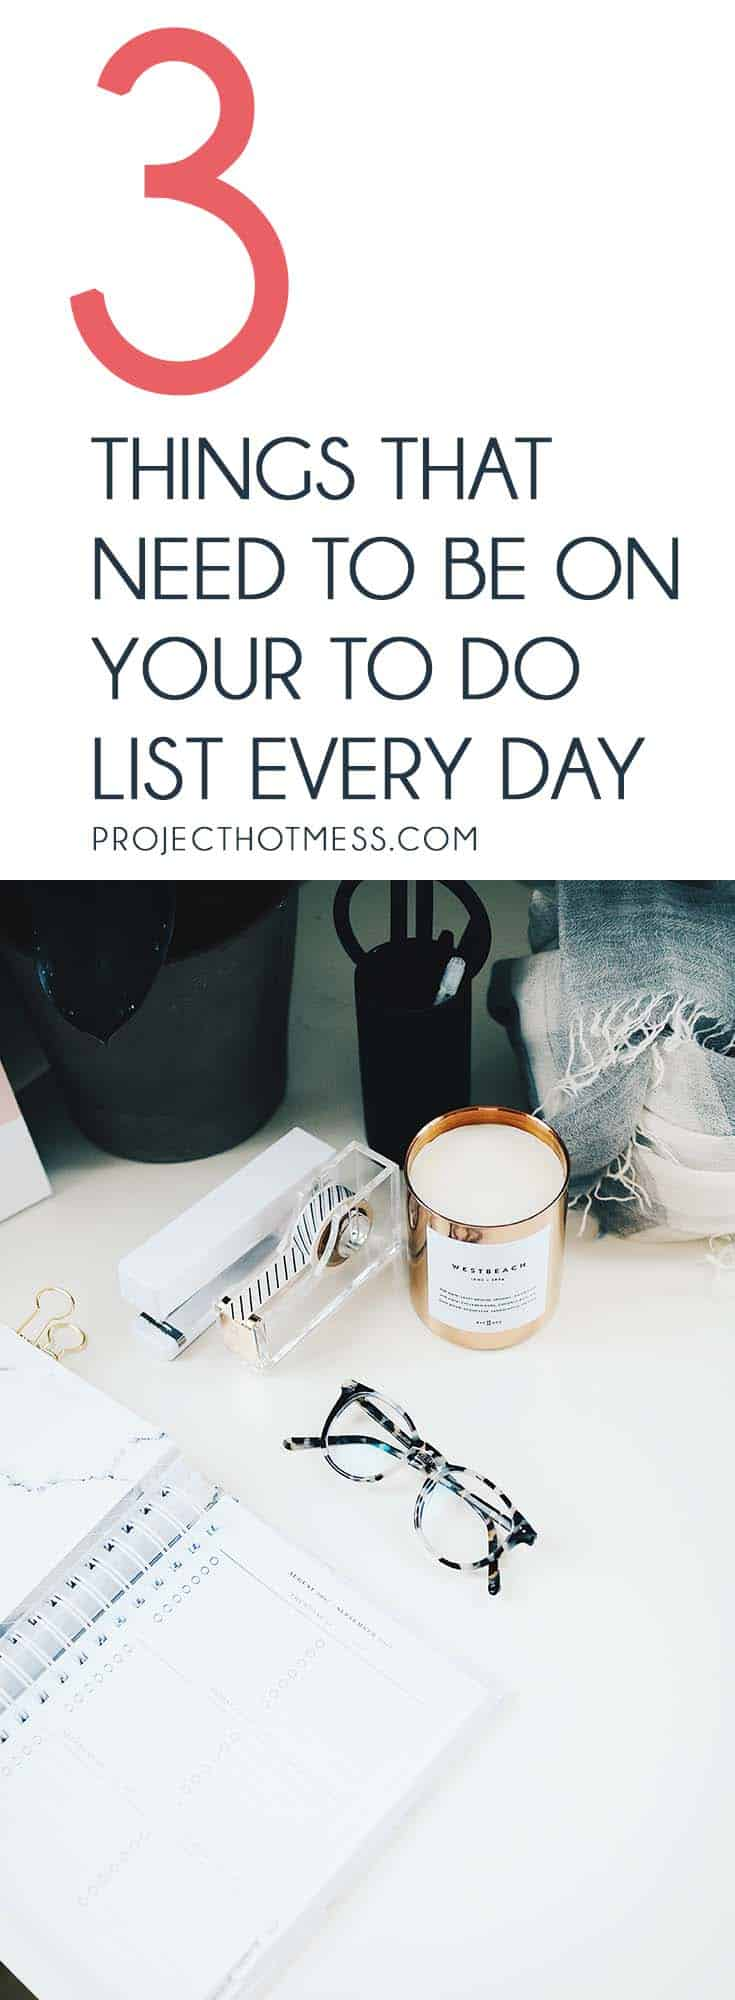 Stop overcomplicating your to do list and keep things simple! Focus on these 3 things that need to be on your to do list every day and feel good about it. To Do List   Productivity  